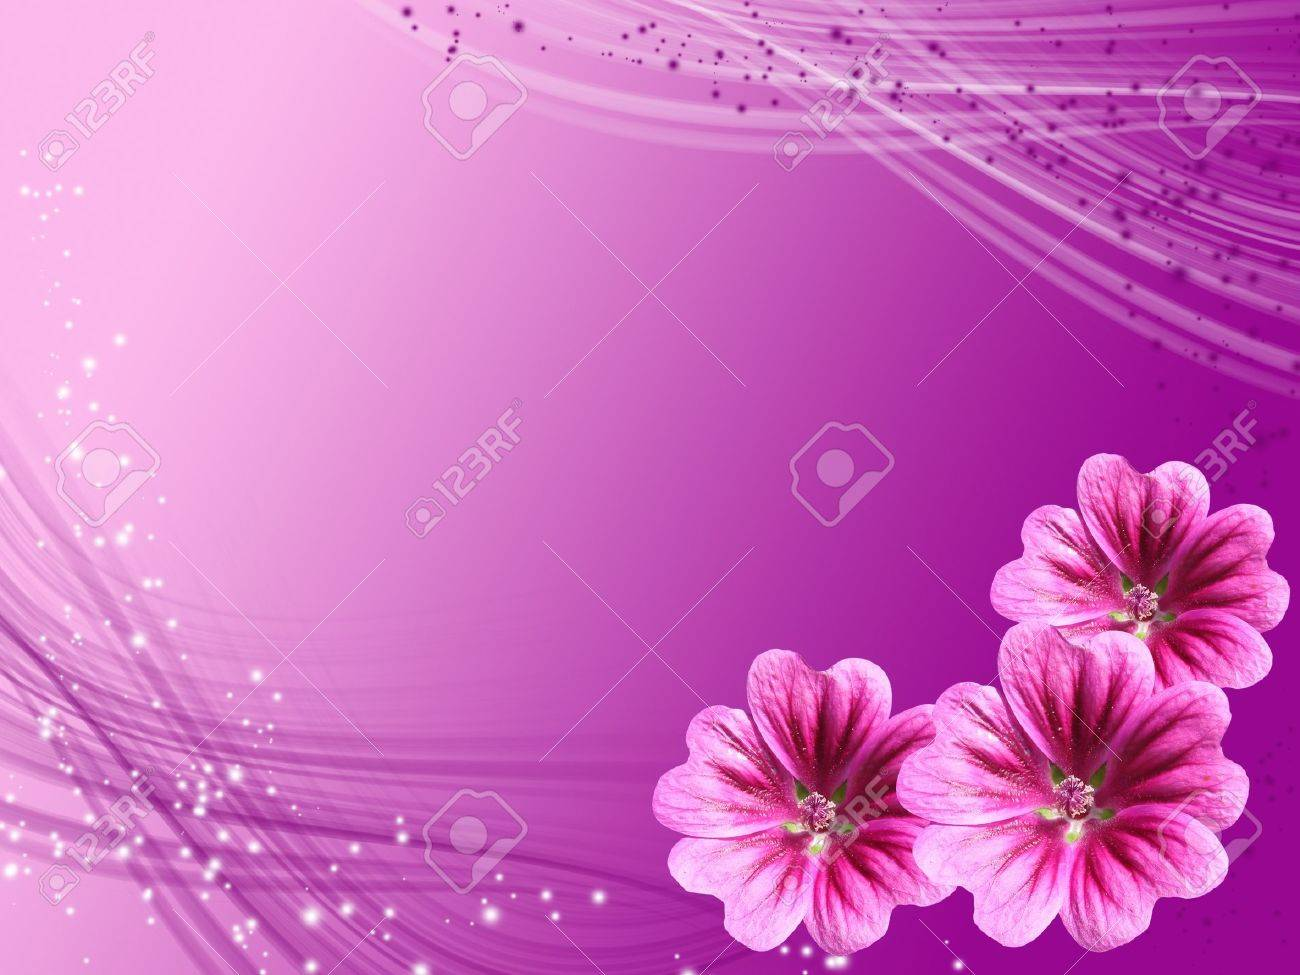 violet card with flowers hollyhock Stock Photo - 8492263